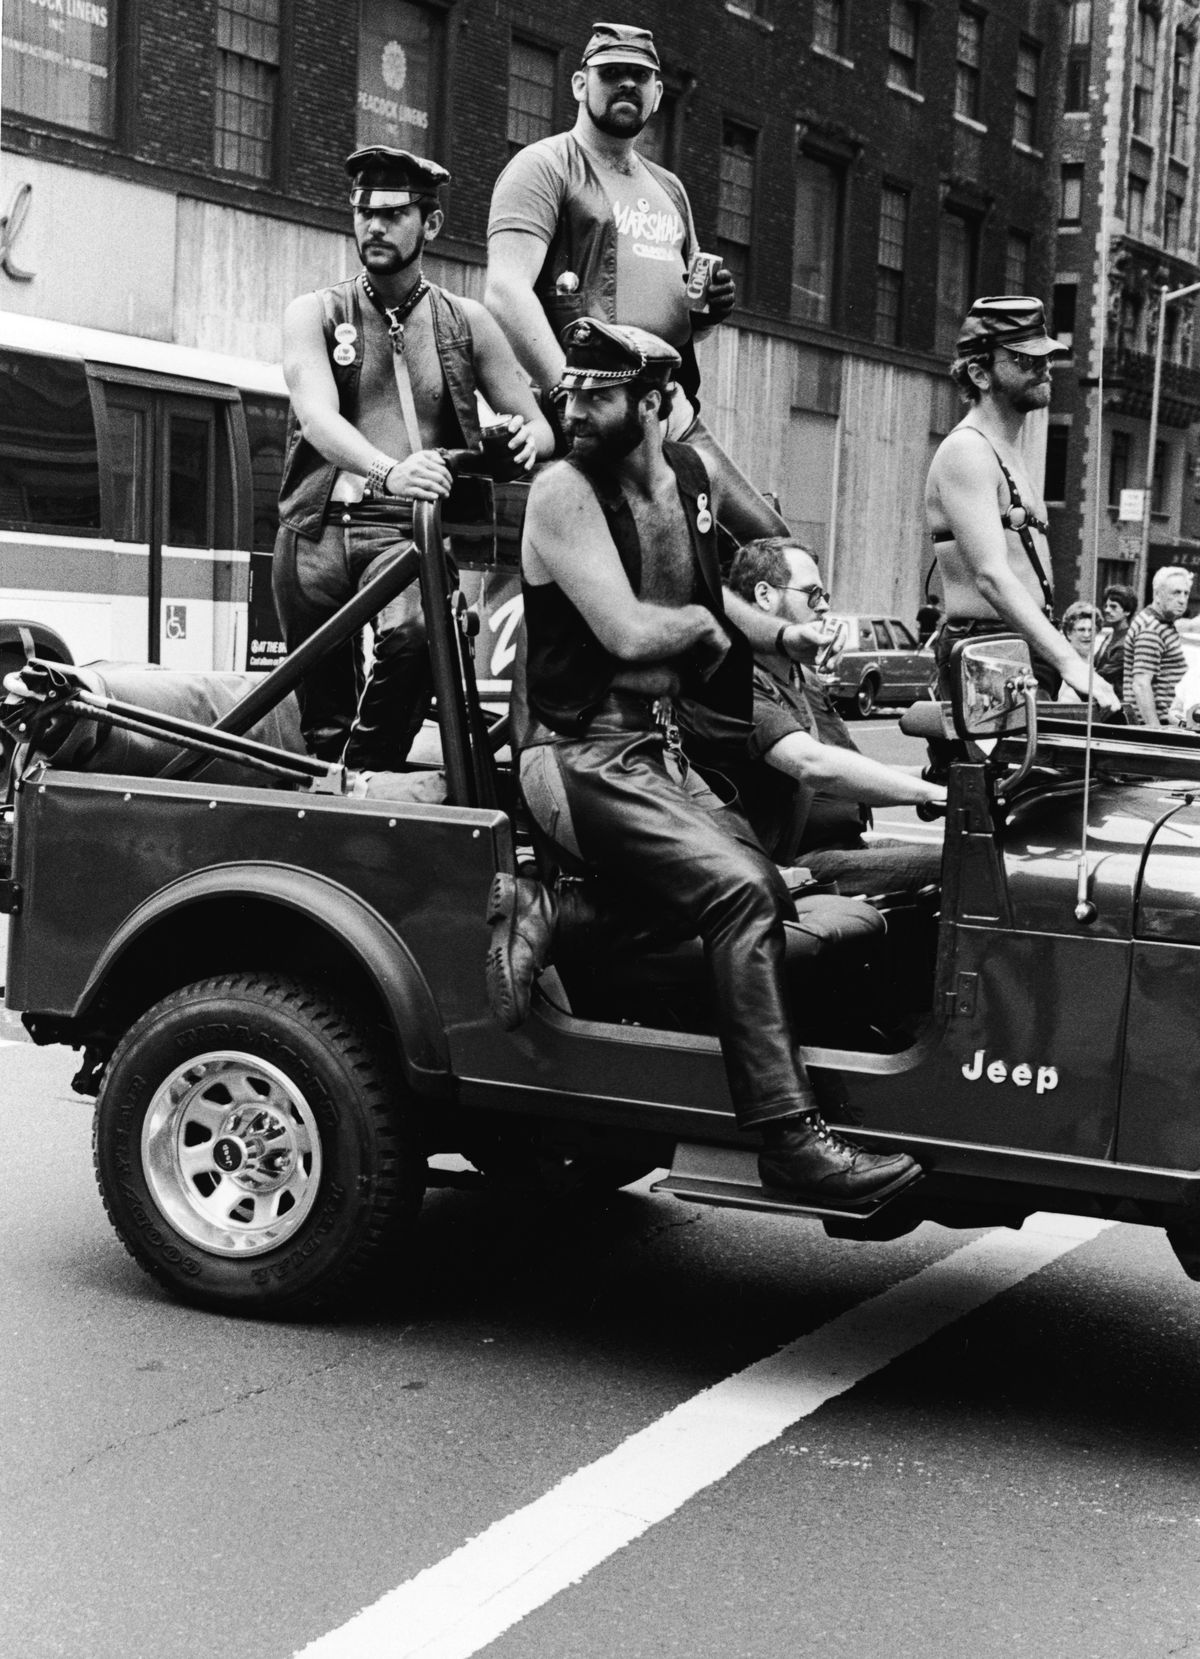 Men dressed in leather, harnesses, and leashes at New York City's Gay Pride Parade in 1980.